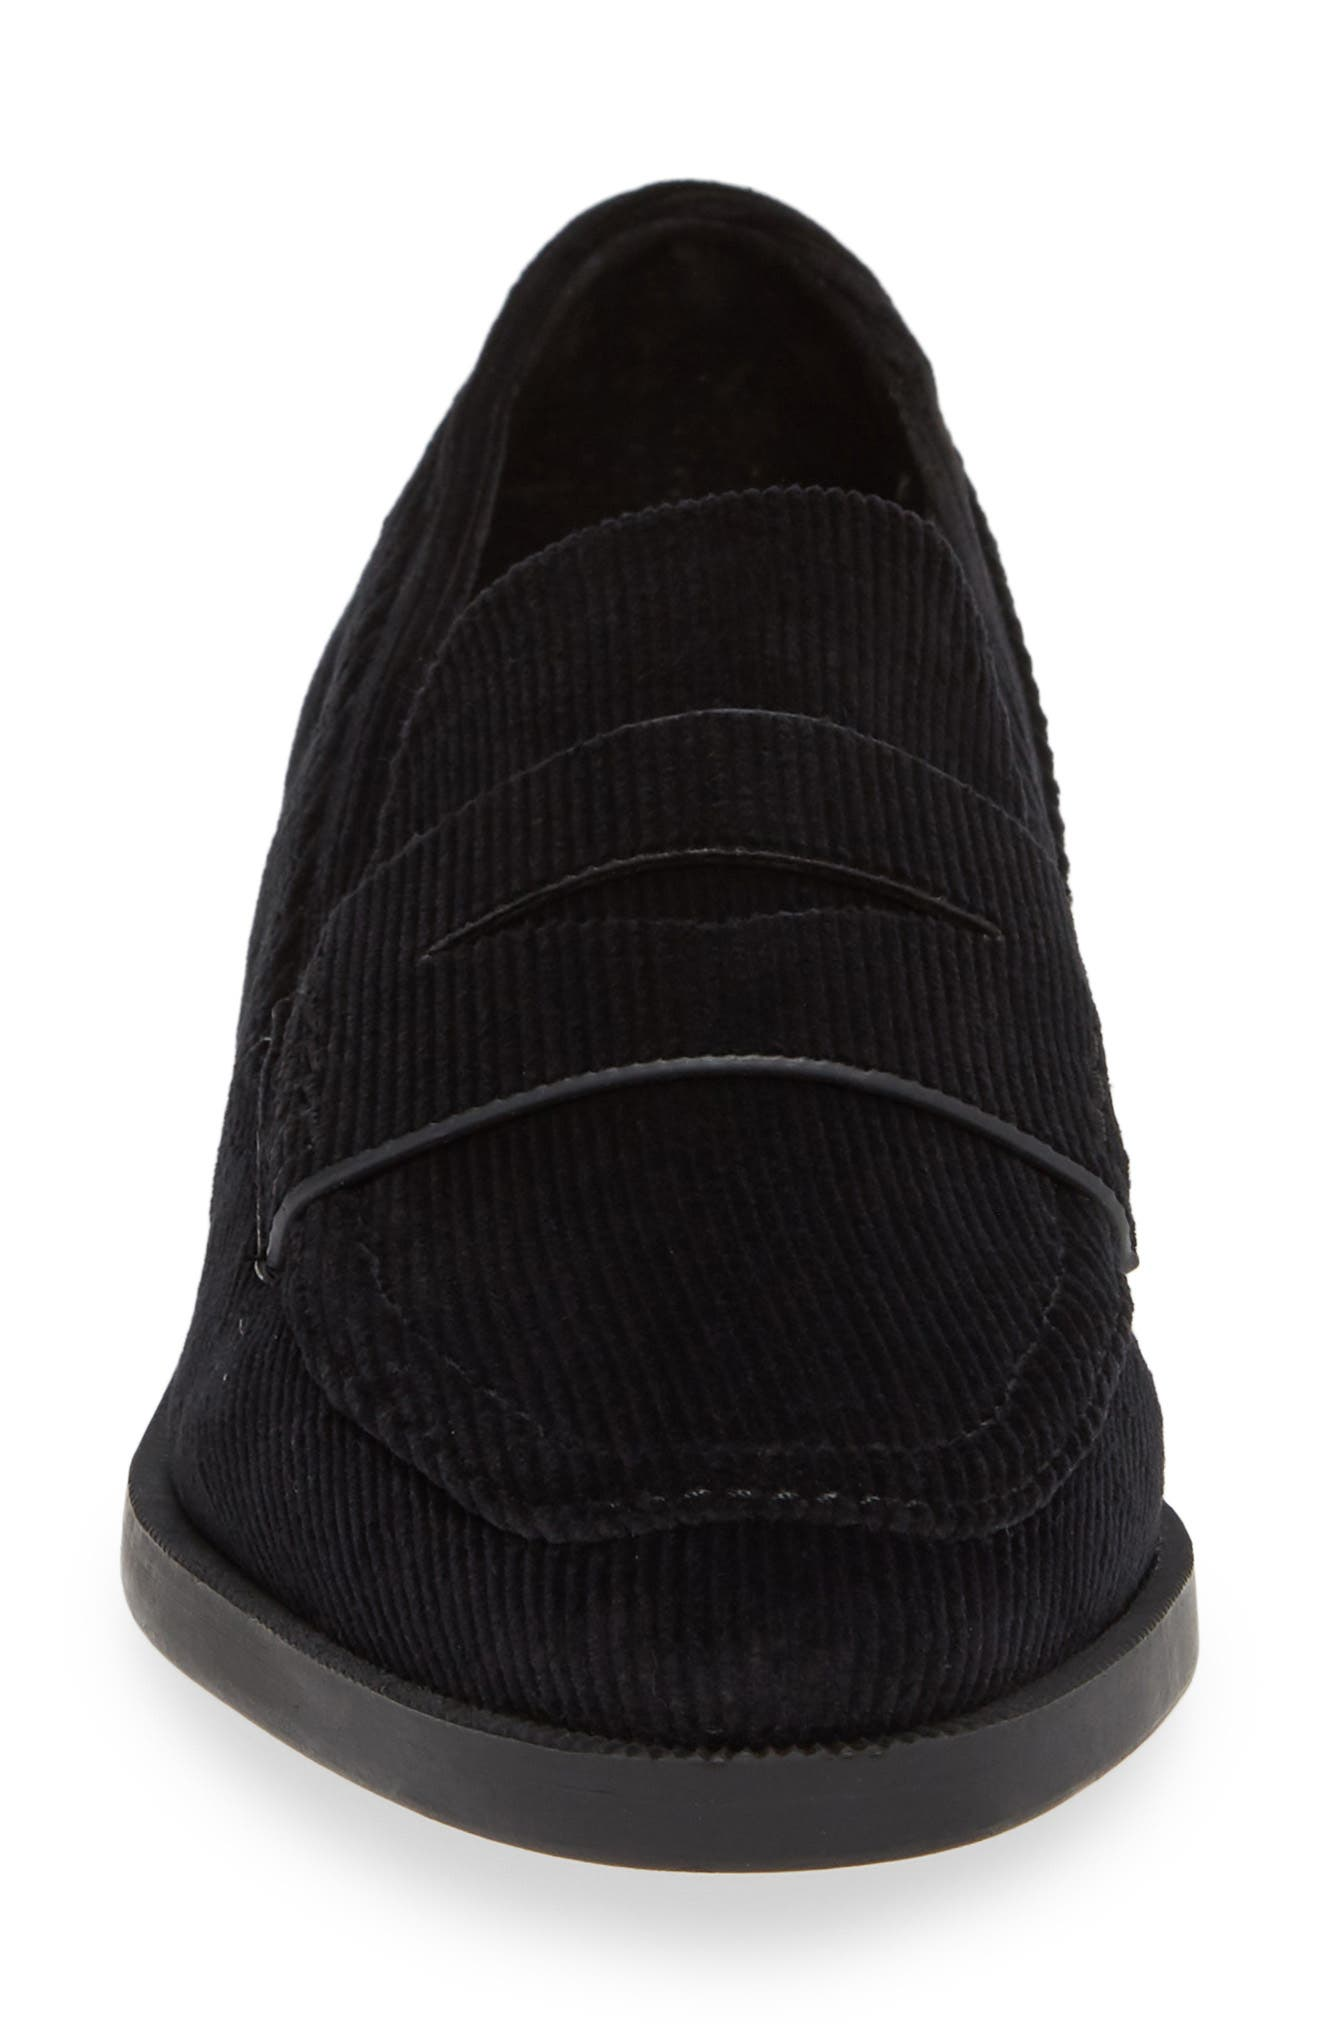 Diplomat Penny Loafer,                             Alternate thumbnail 4, color,                             BLACK FABRIC